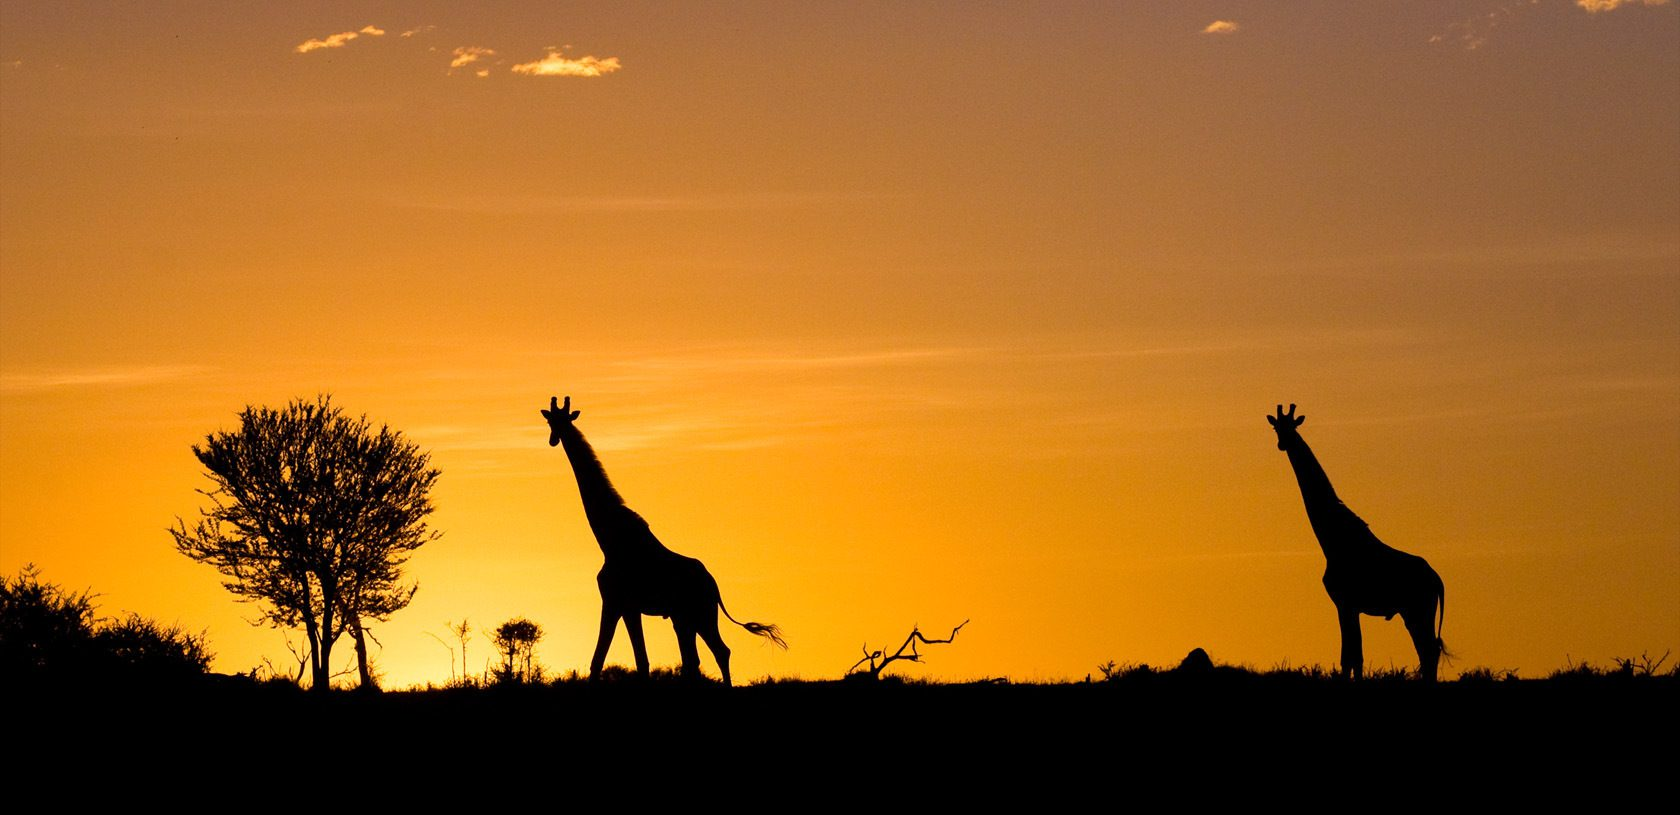 Serengeti Tanzania giraffe at sunset